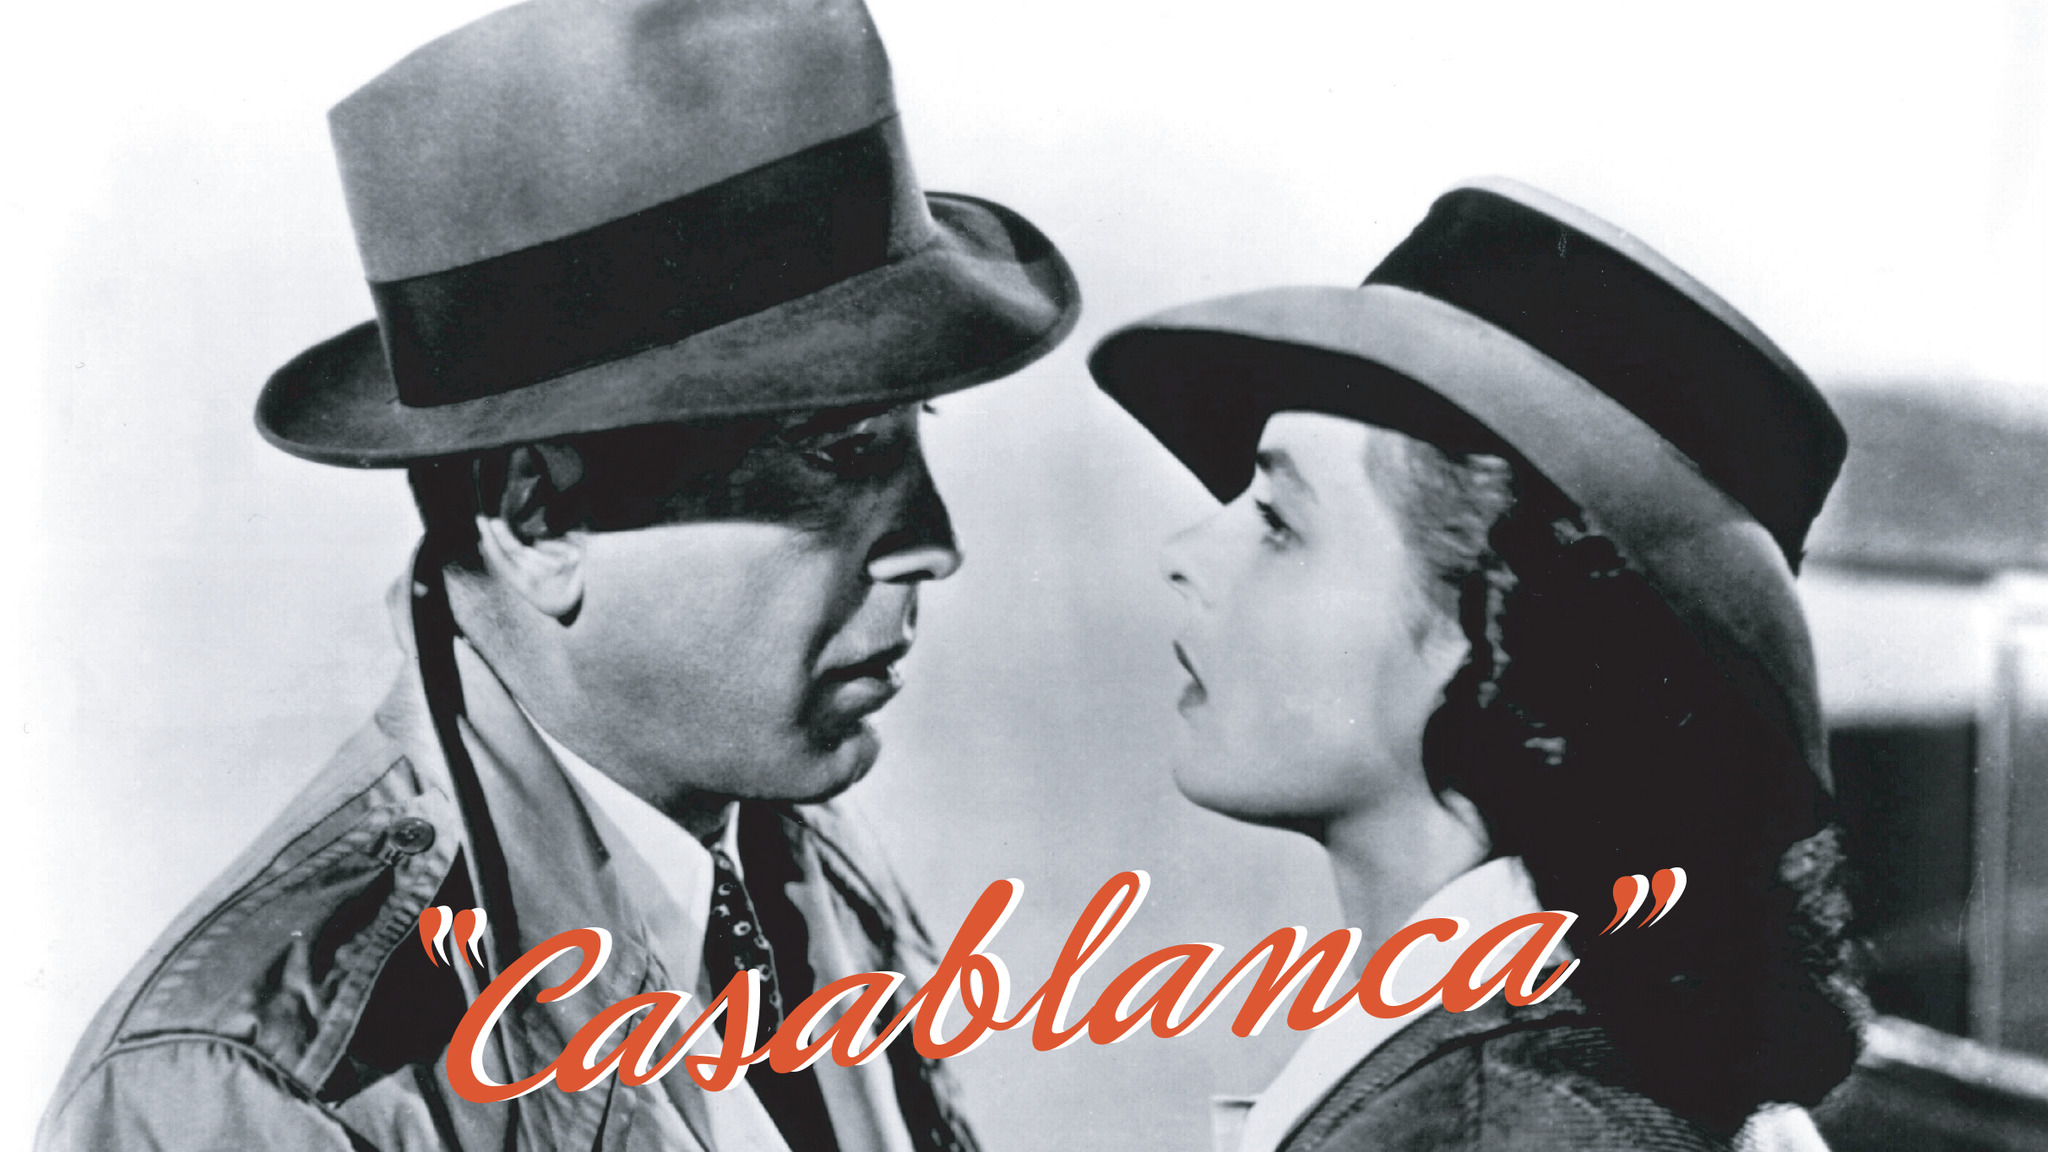 Bank Casablanca Louisville Palace Presents Casablanca 1942 On First Friday